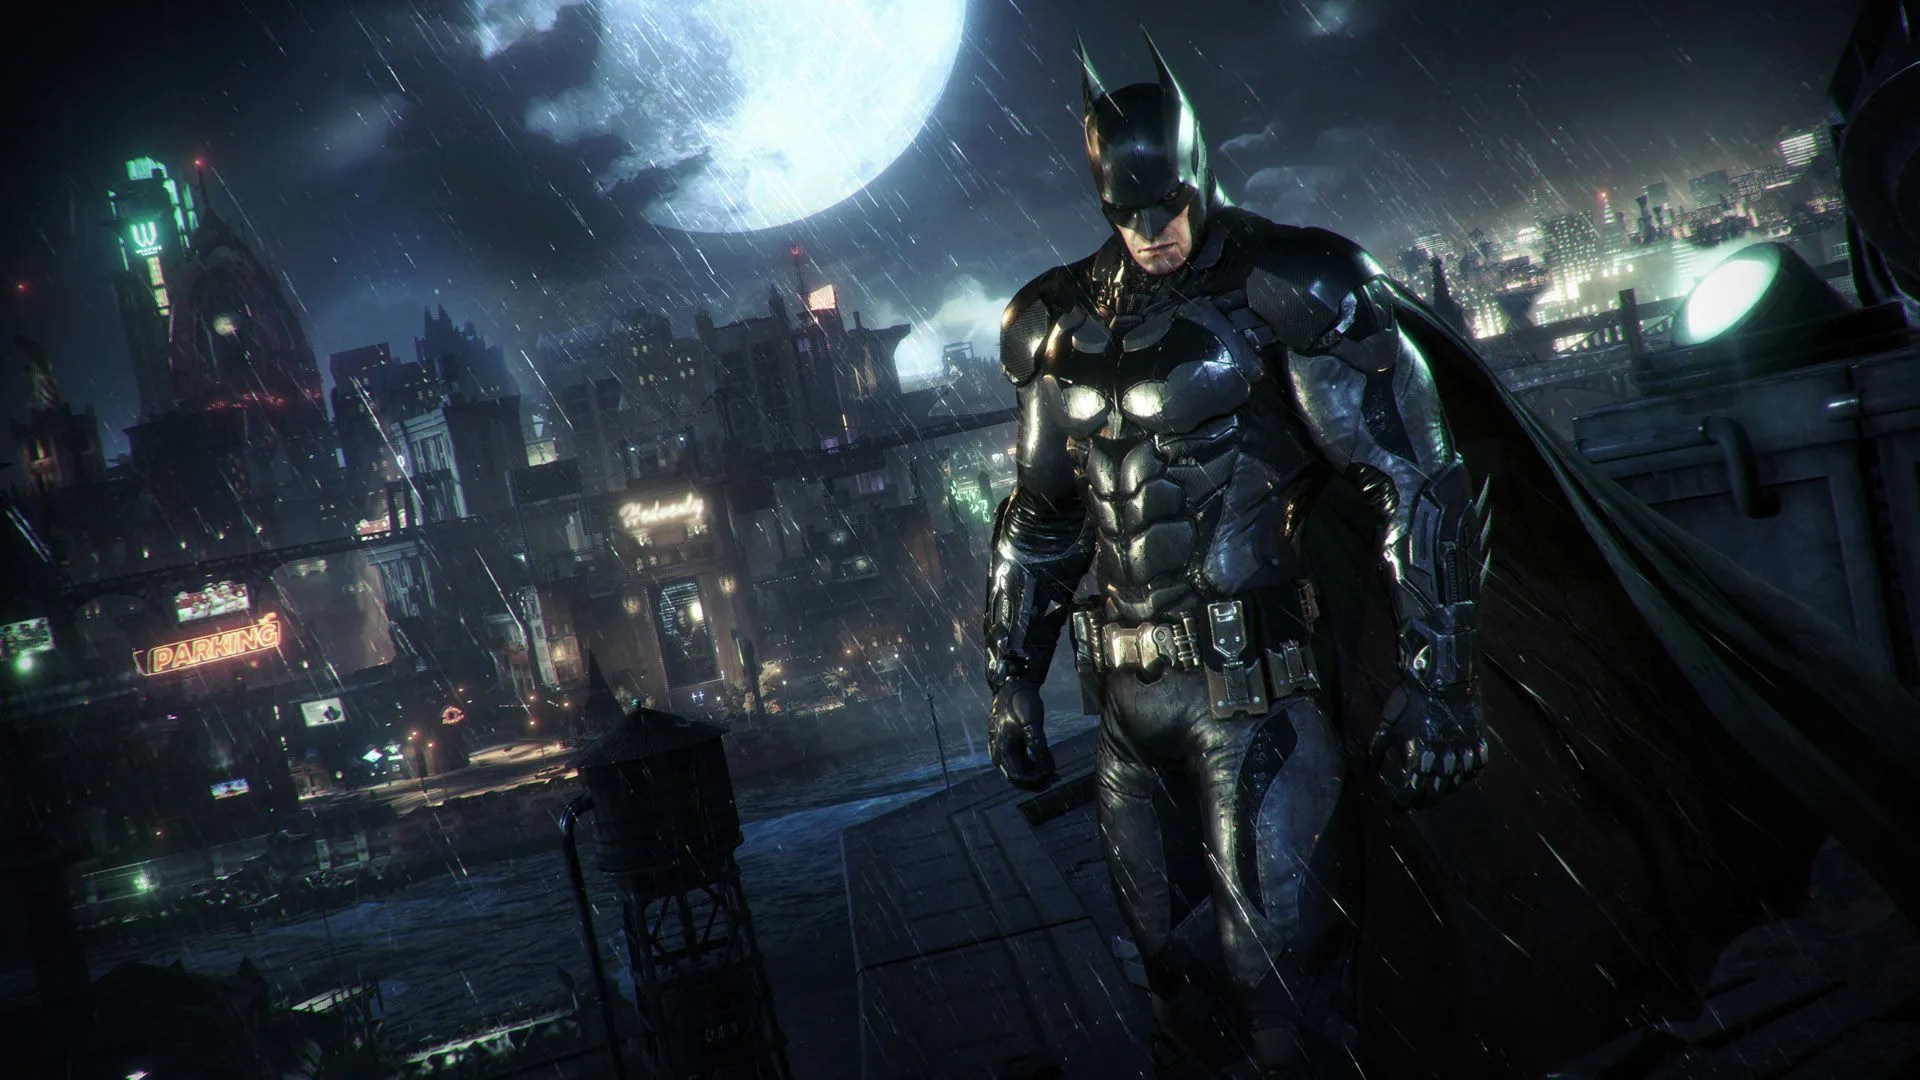 The Future of Batman after Arkham Knight - Expansive